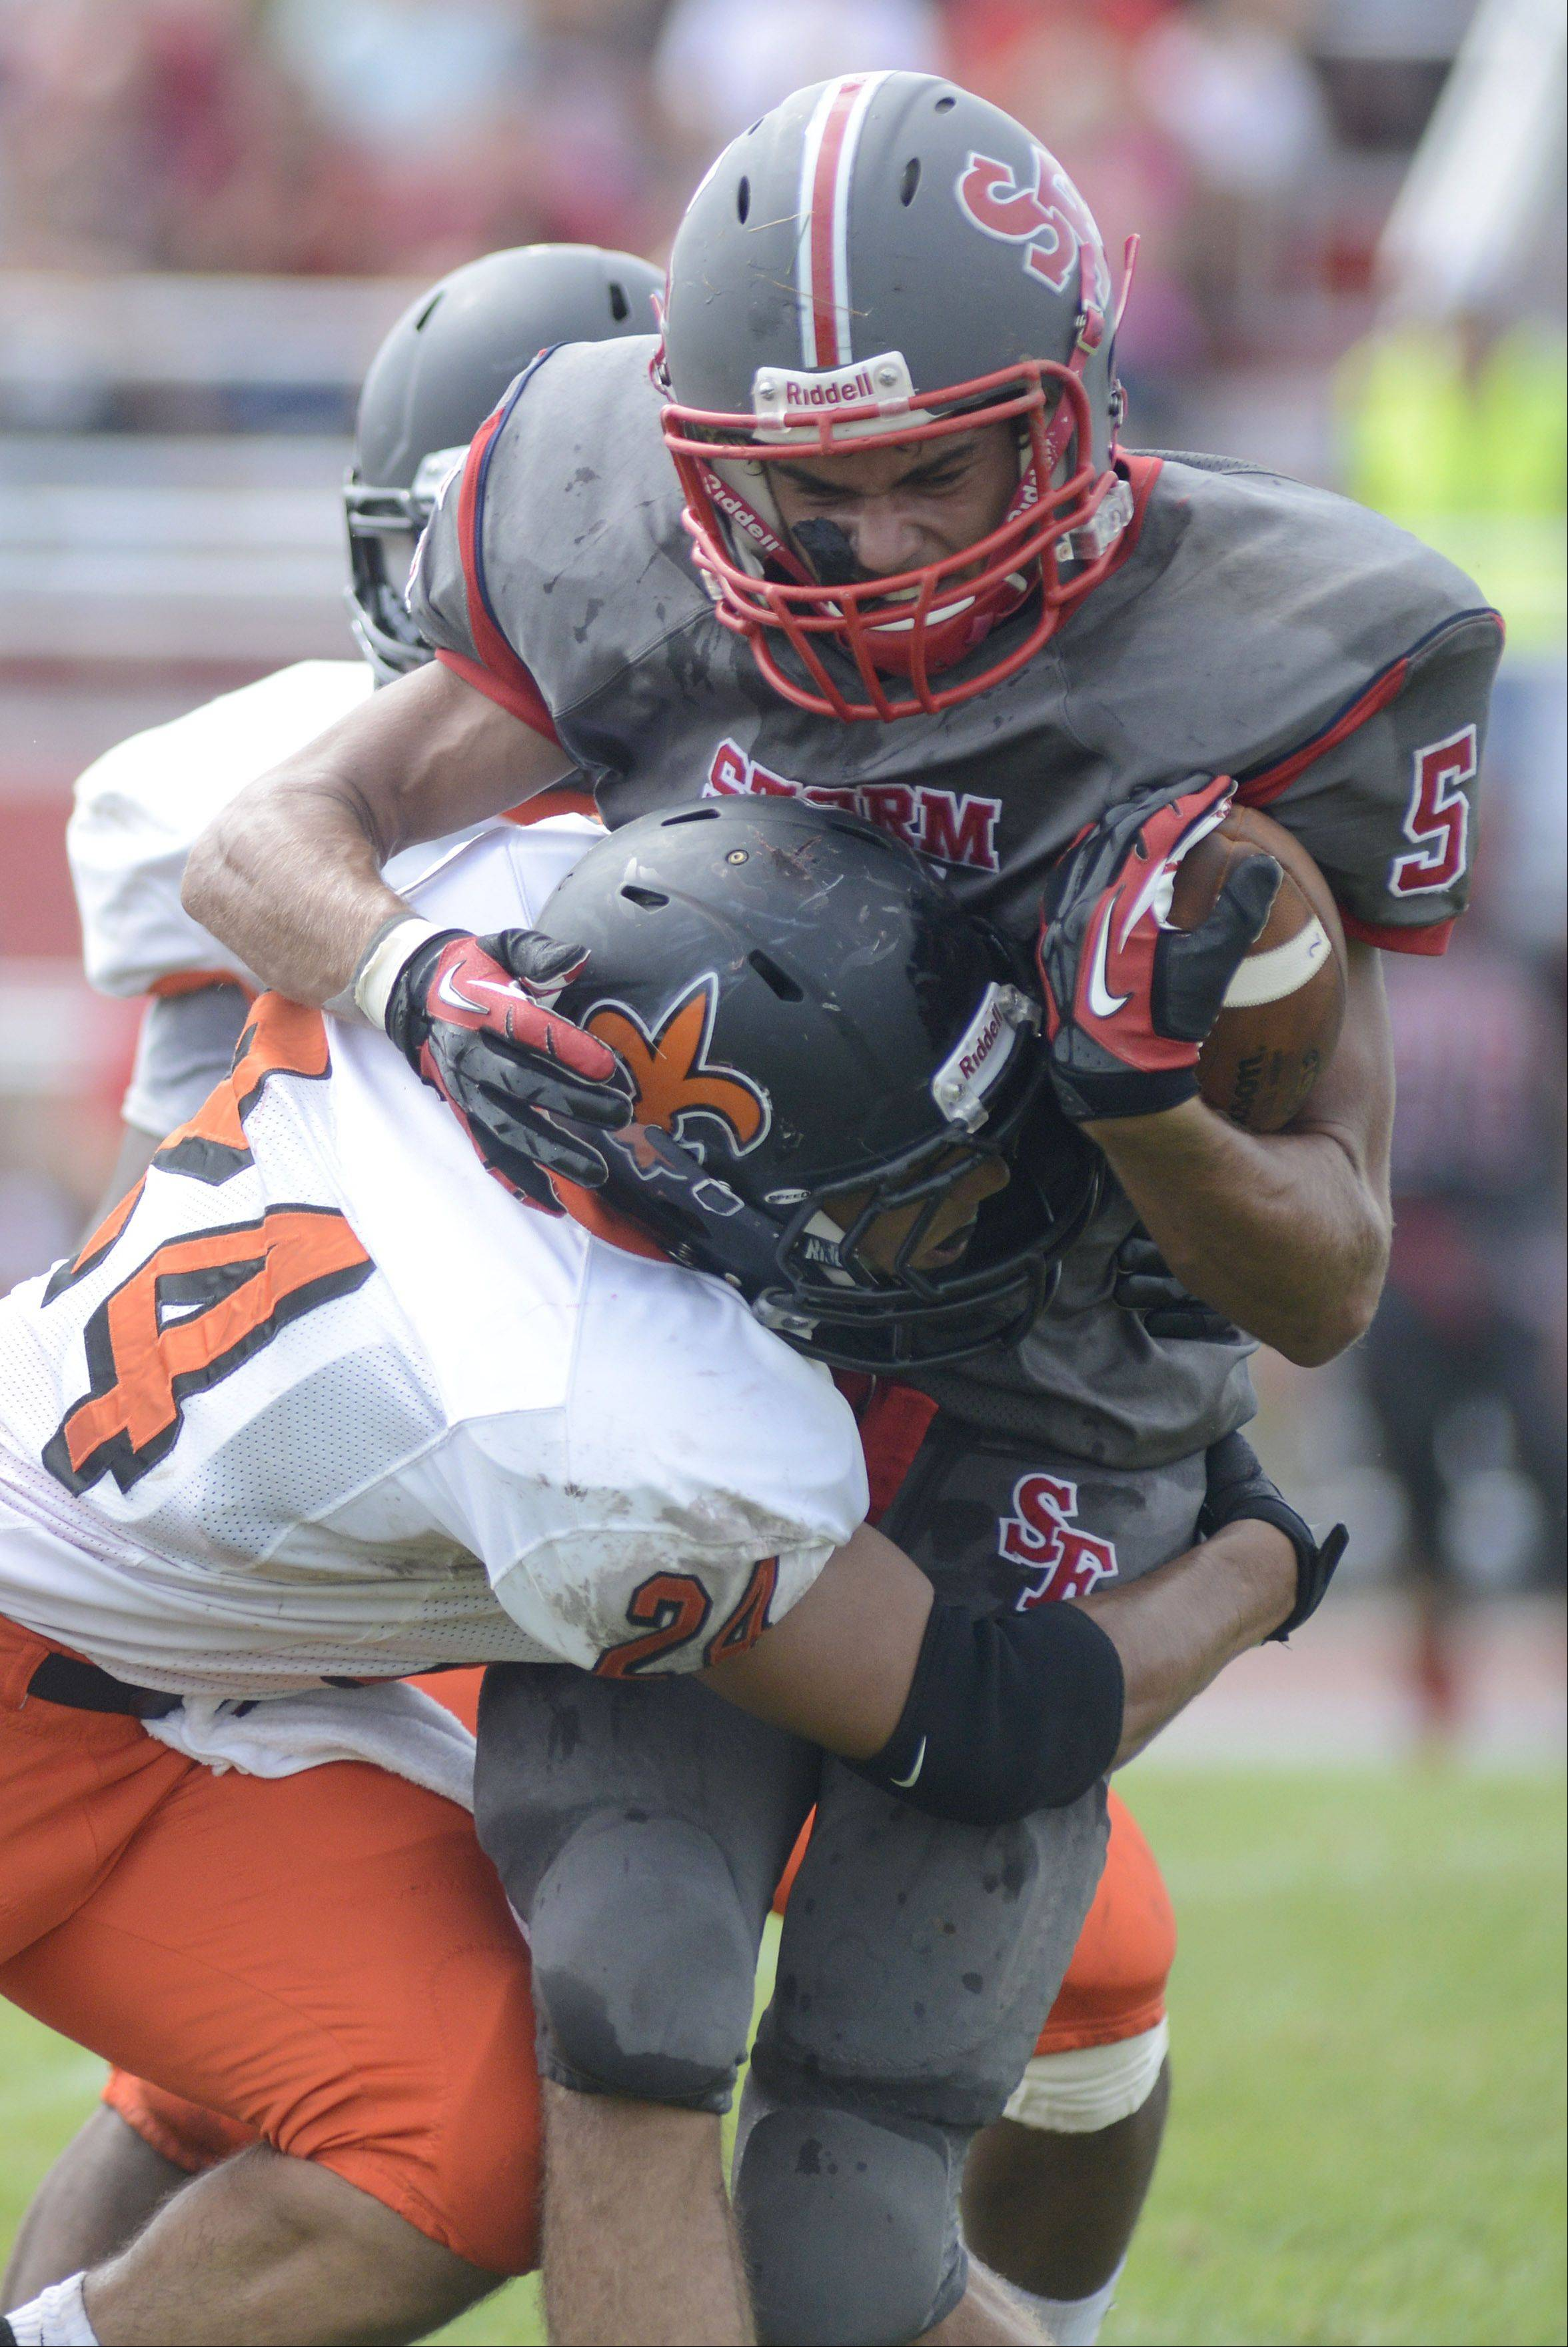 South Elgin's Tyler Christensen is sacked by St. Charles East's Ramon Lopez in the second quarter on Saturday, August 31.